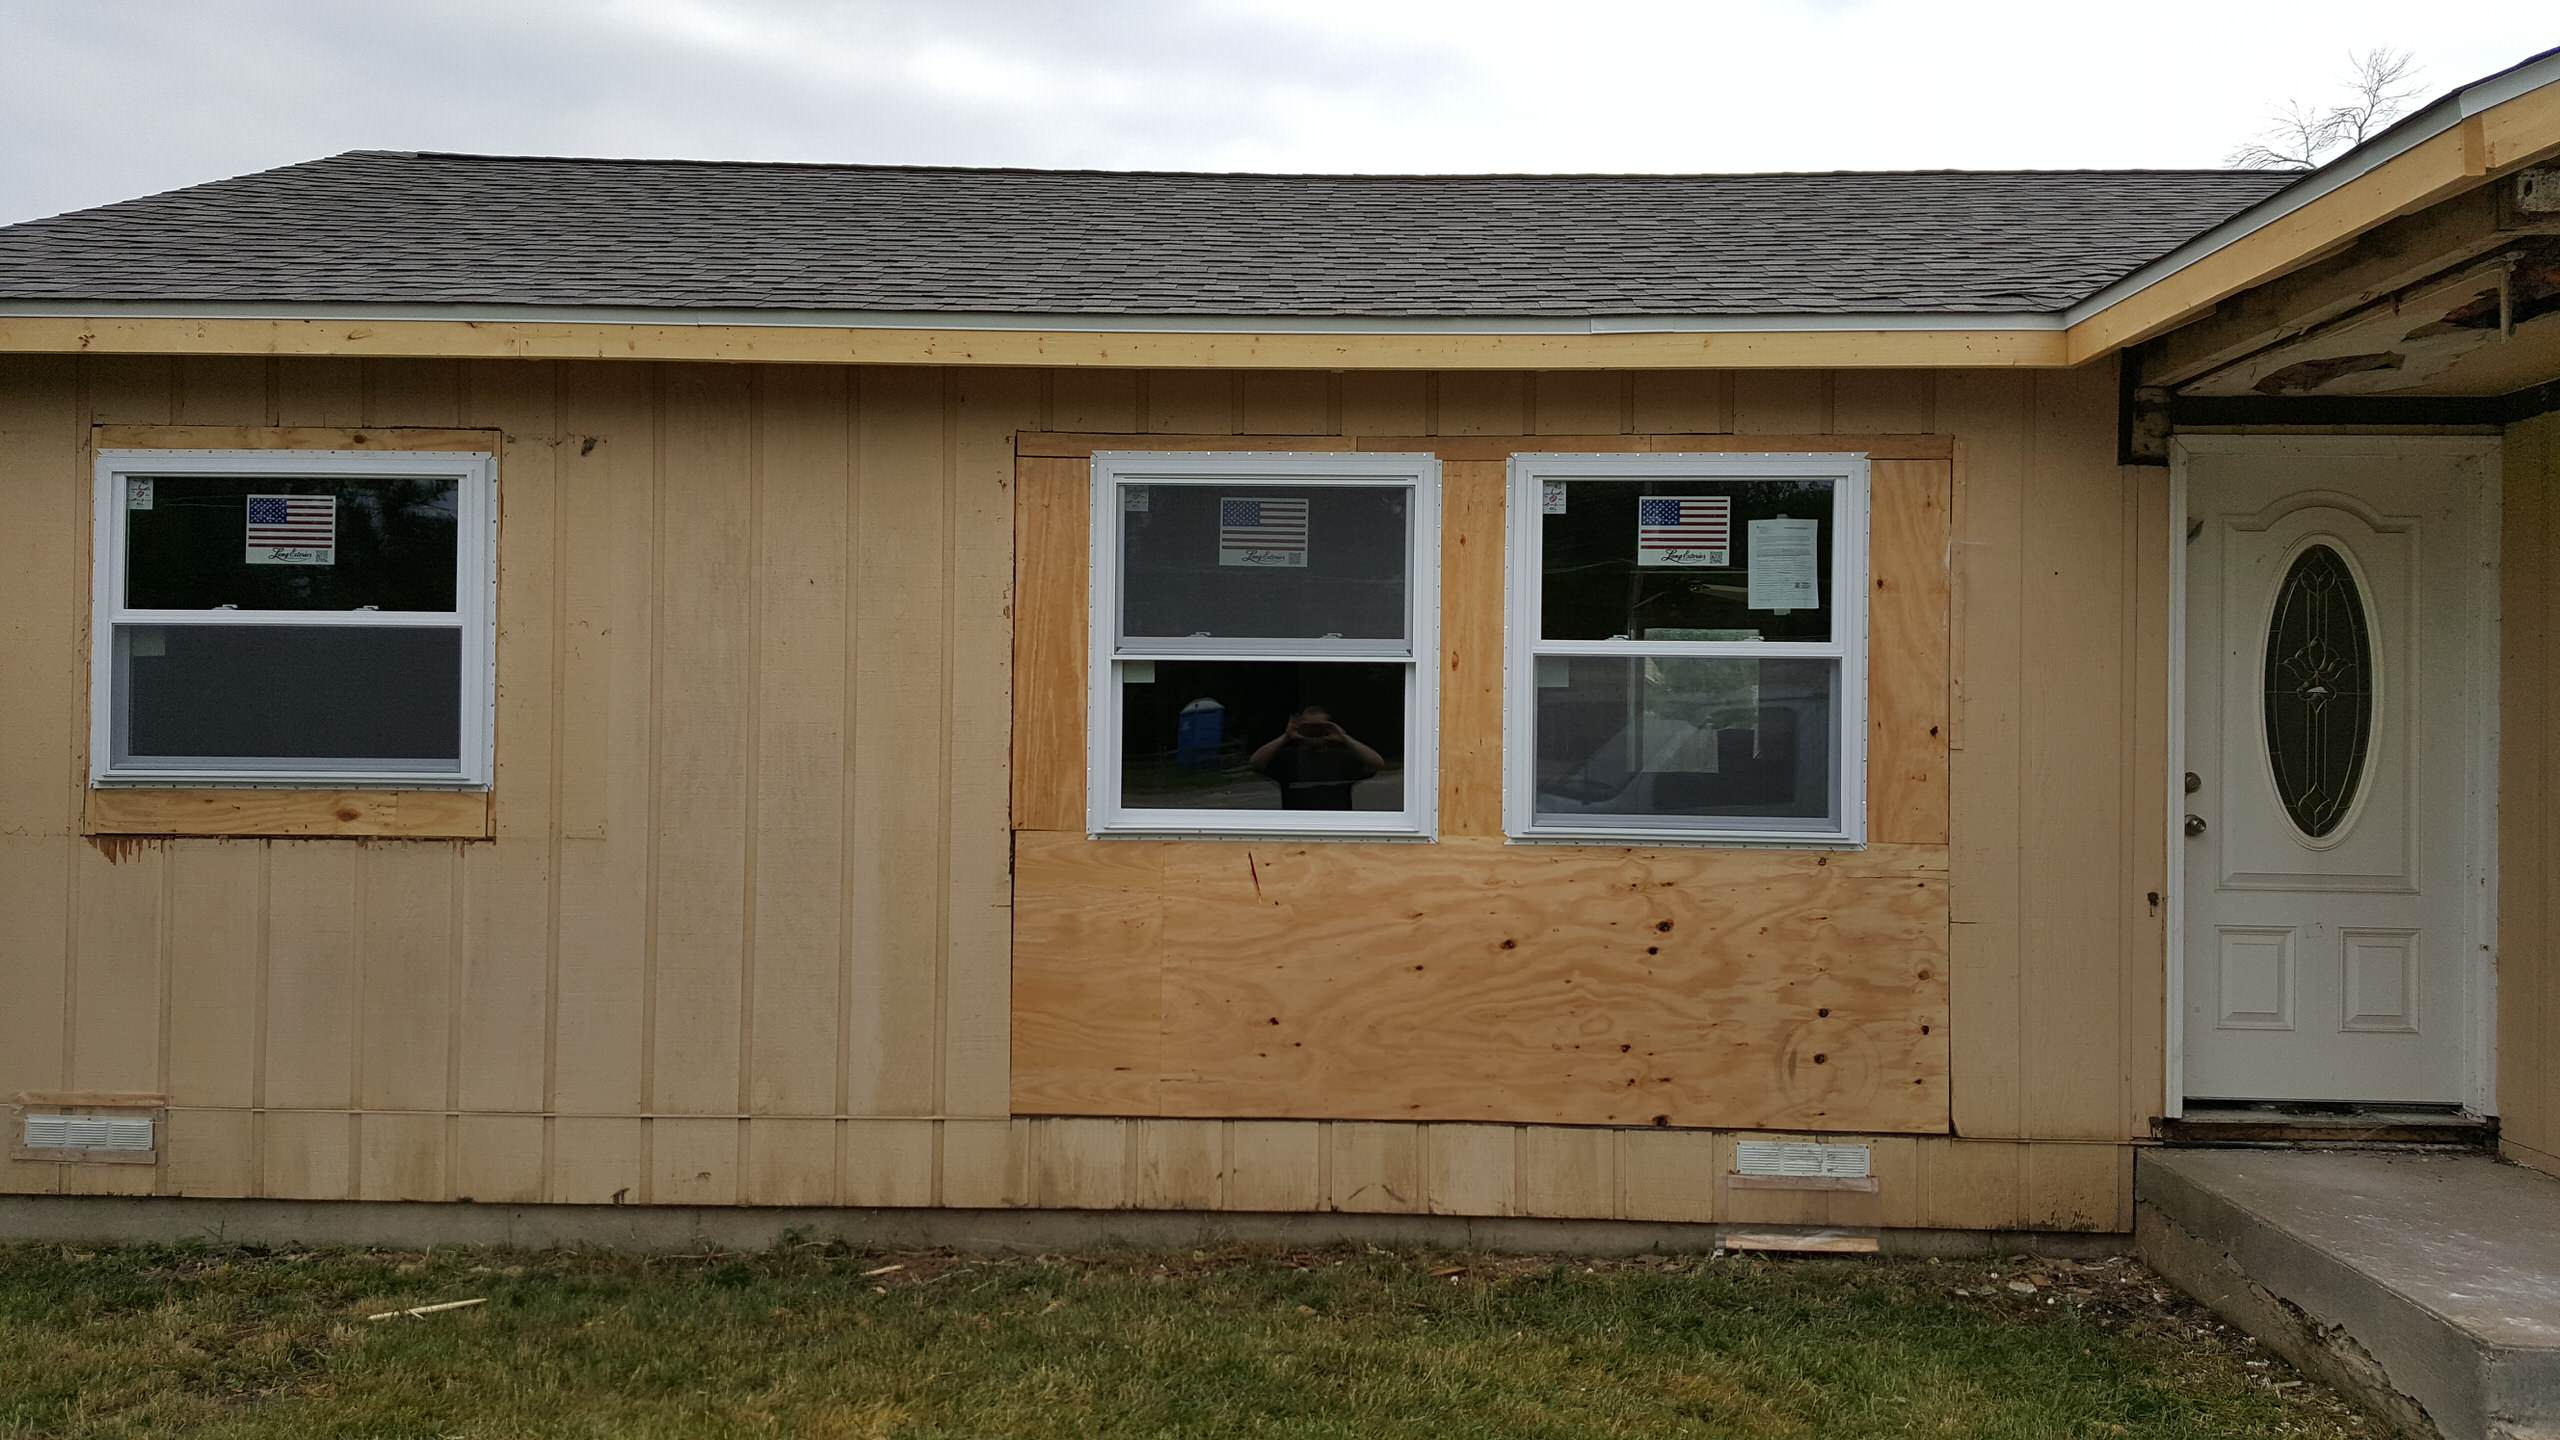 new window sizes, almost ready for siding